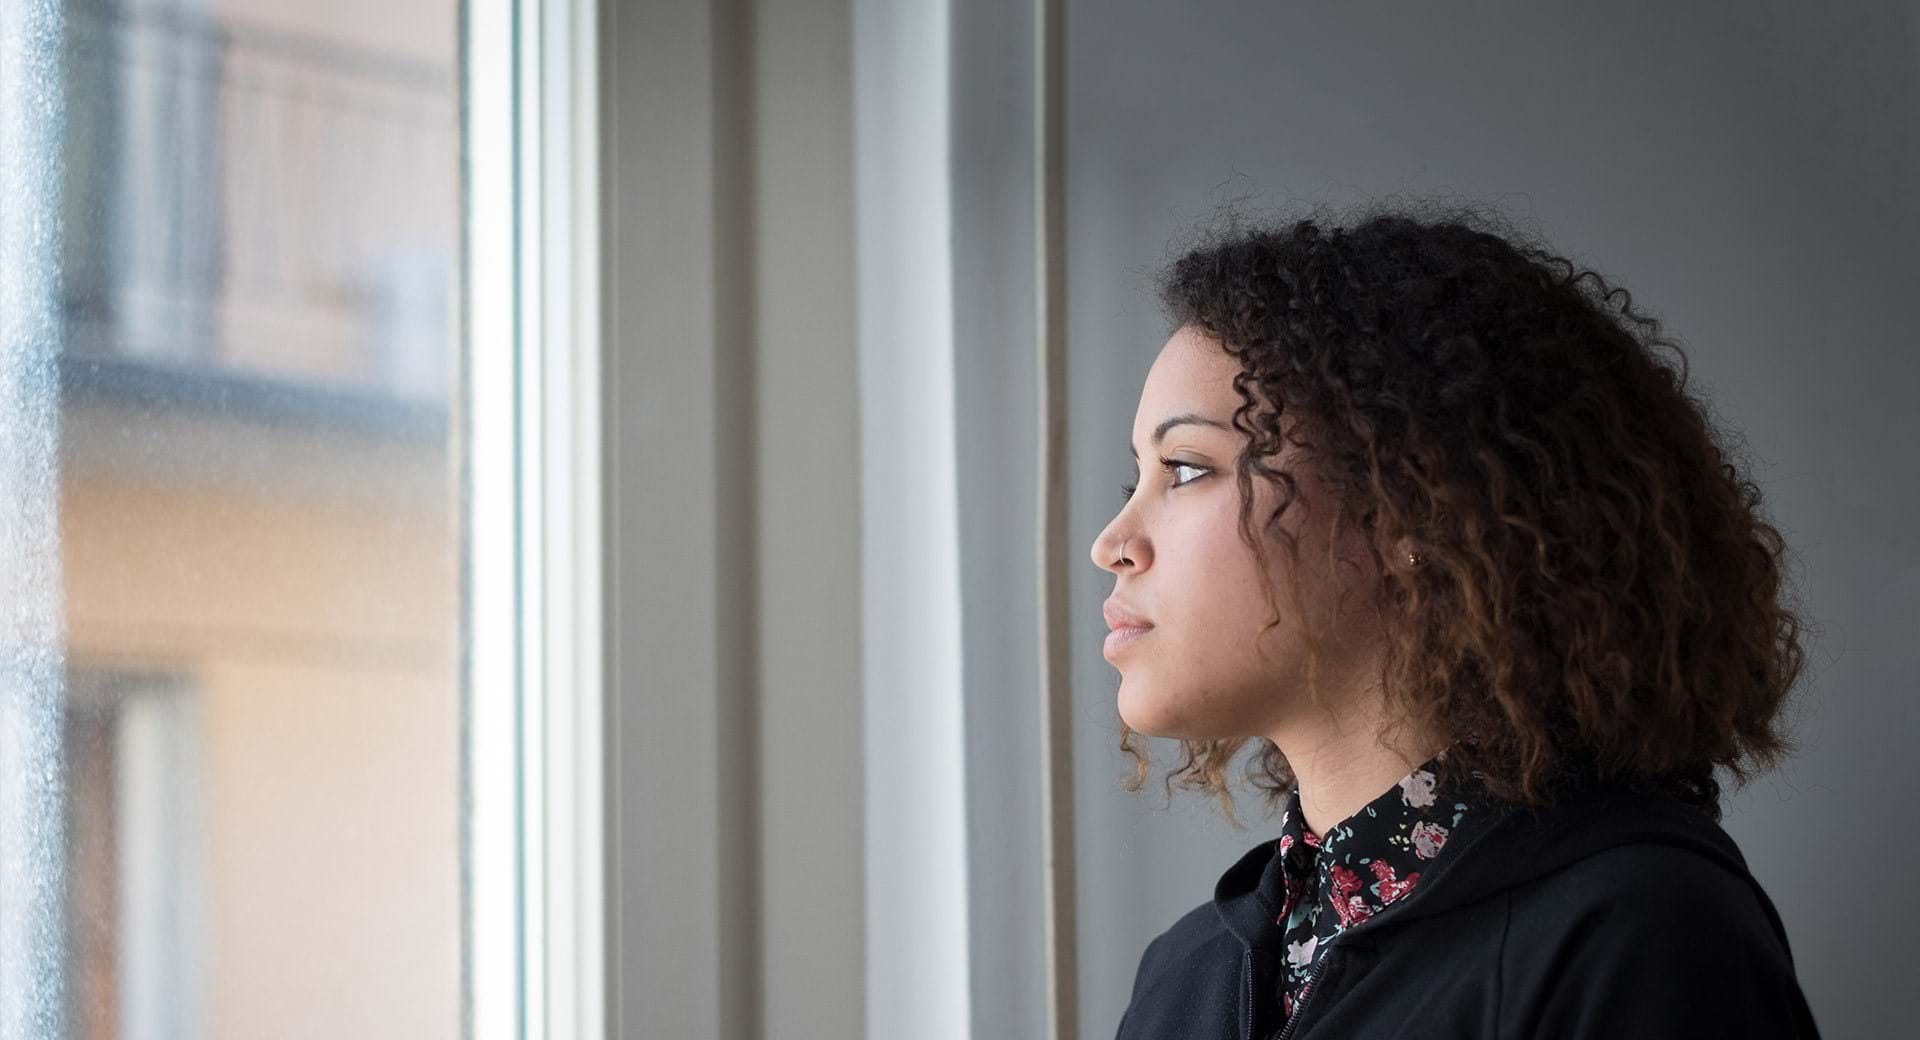 Young woman looks out of the window.